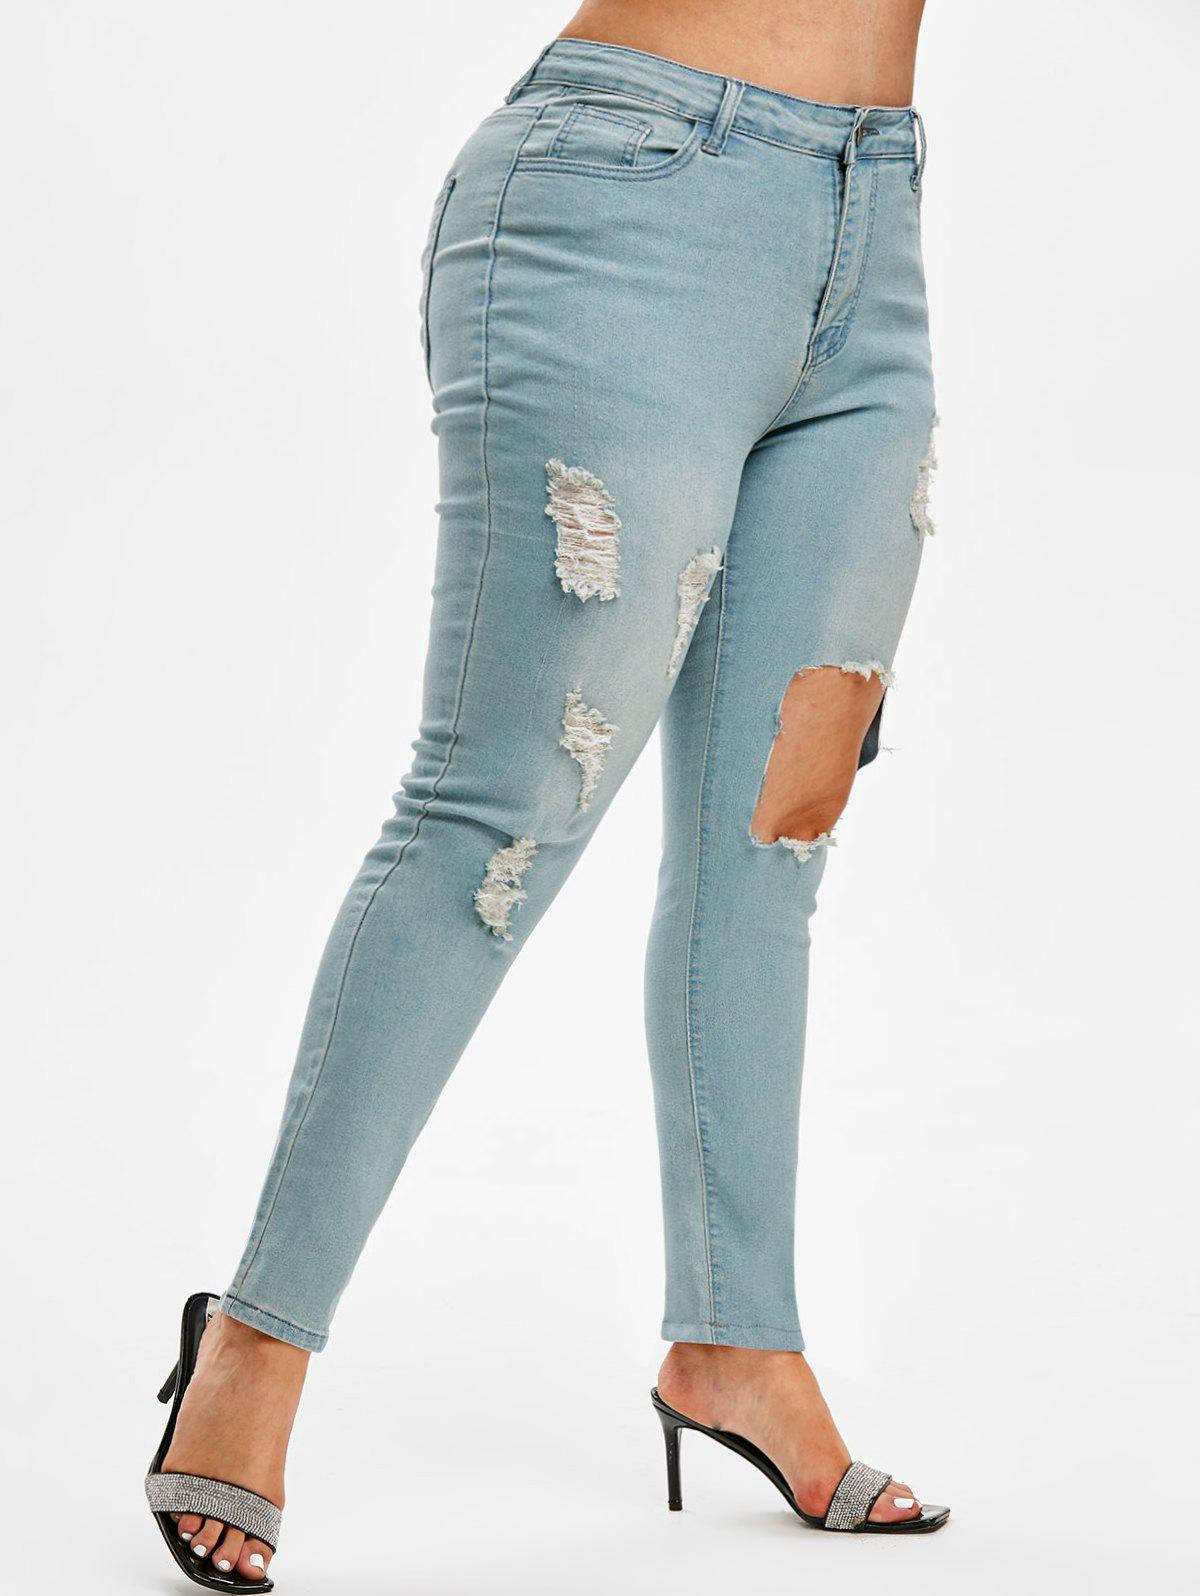 Shop Distressed Cut Out Plus Size Skinny Jeans